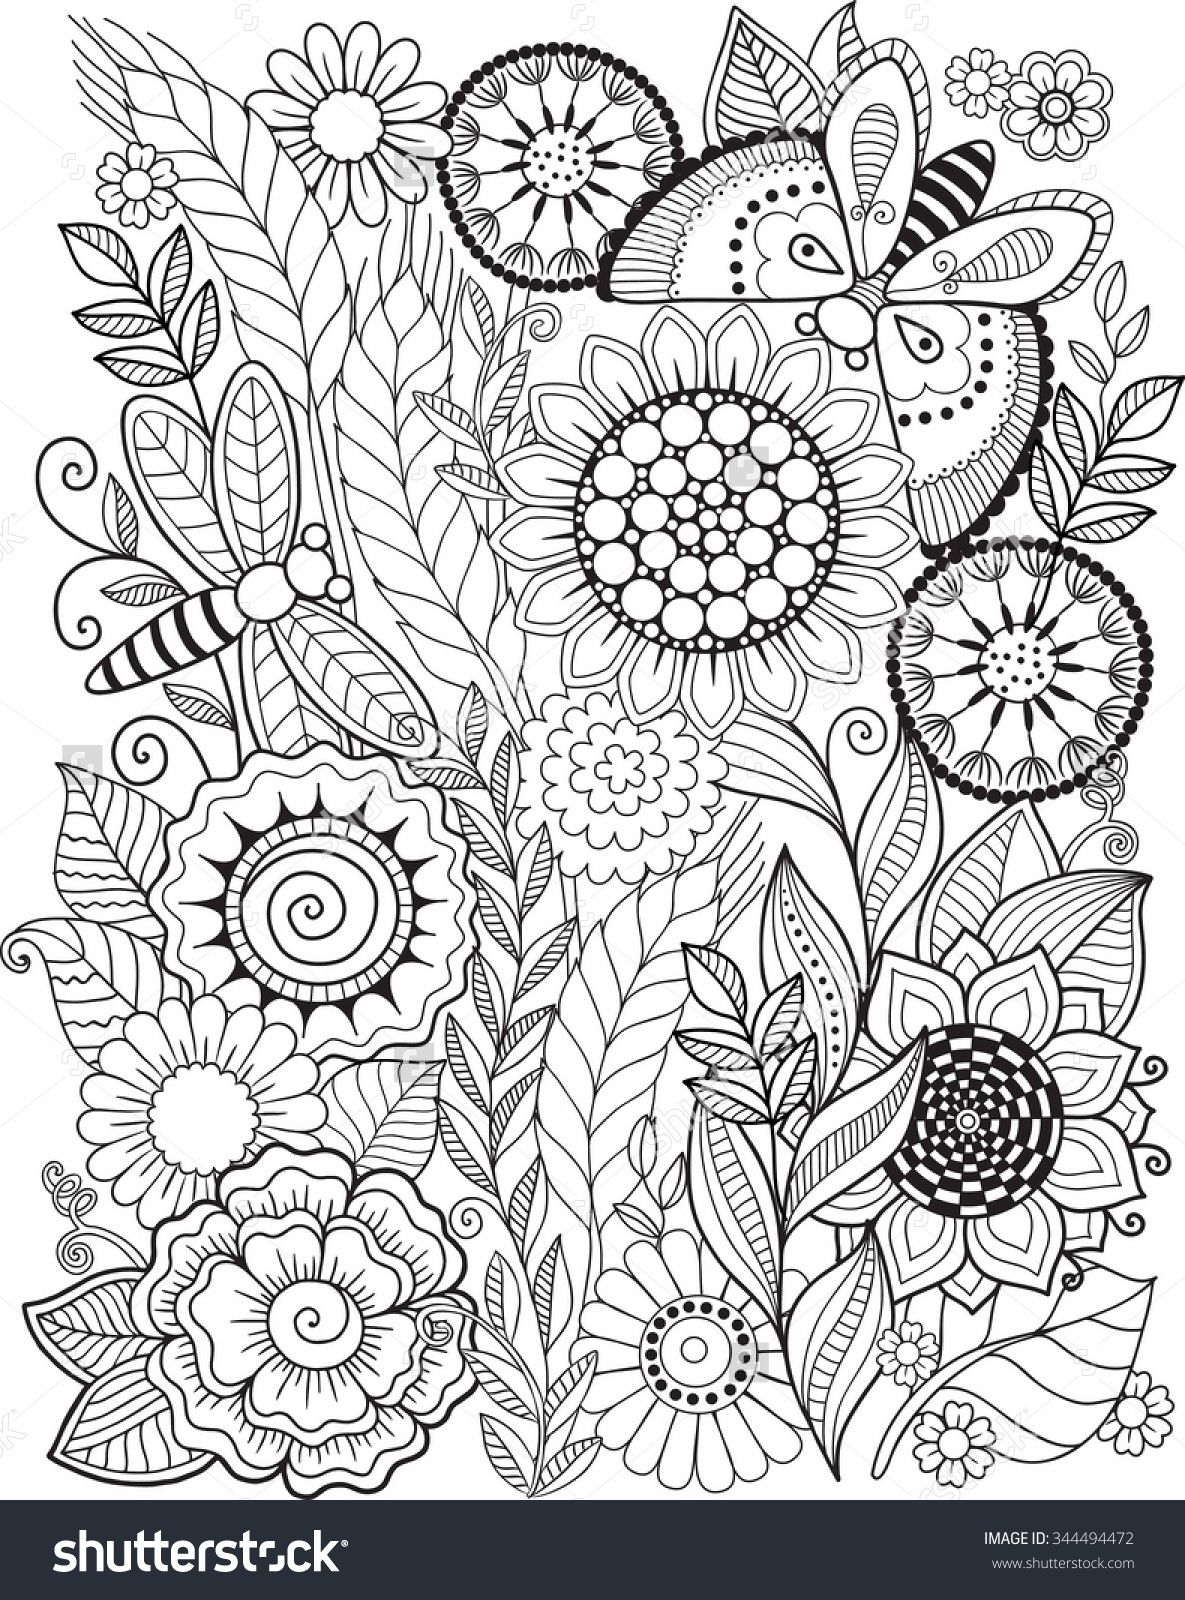 Coloring Book For Adult. Summer Flowers. Vector Elements ...